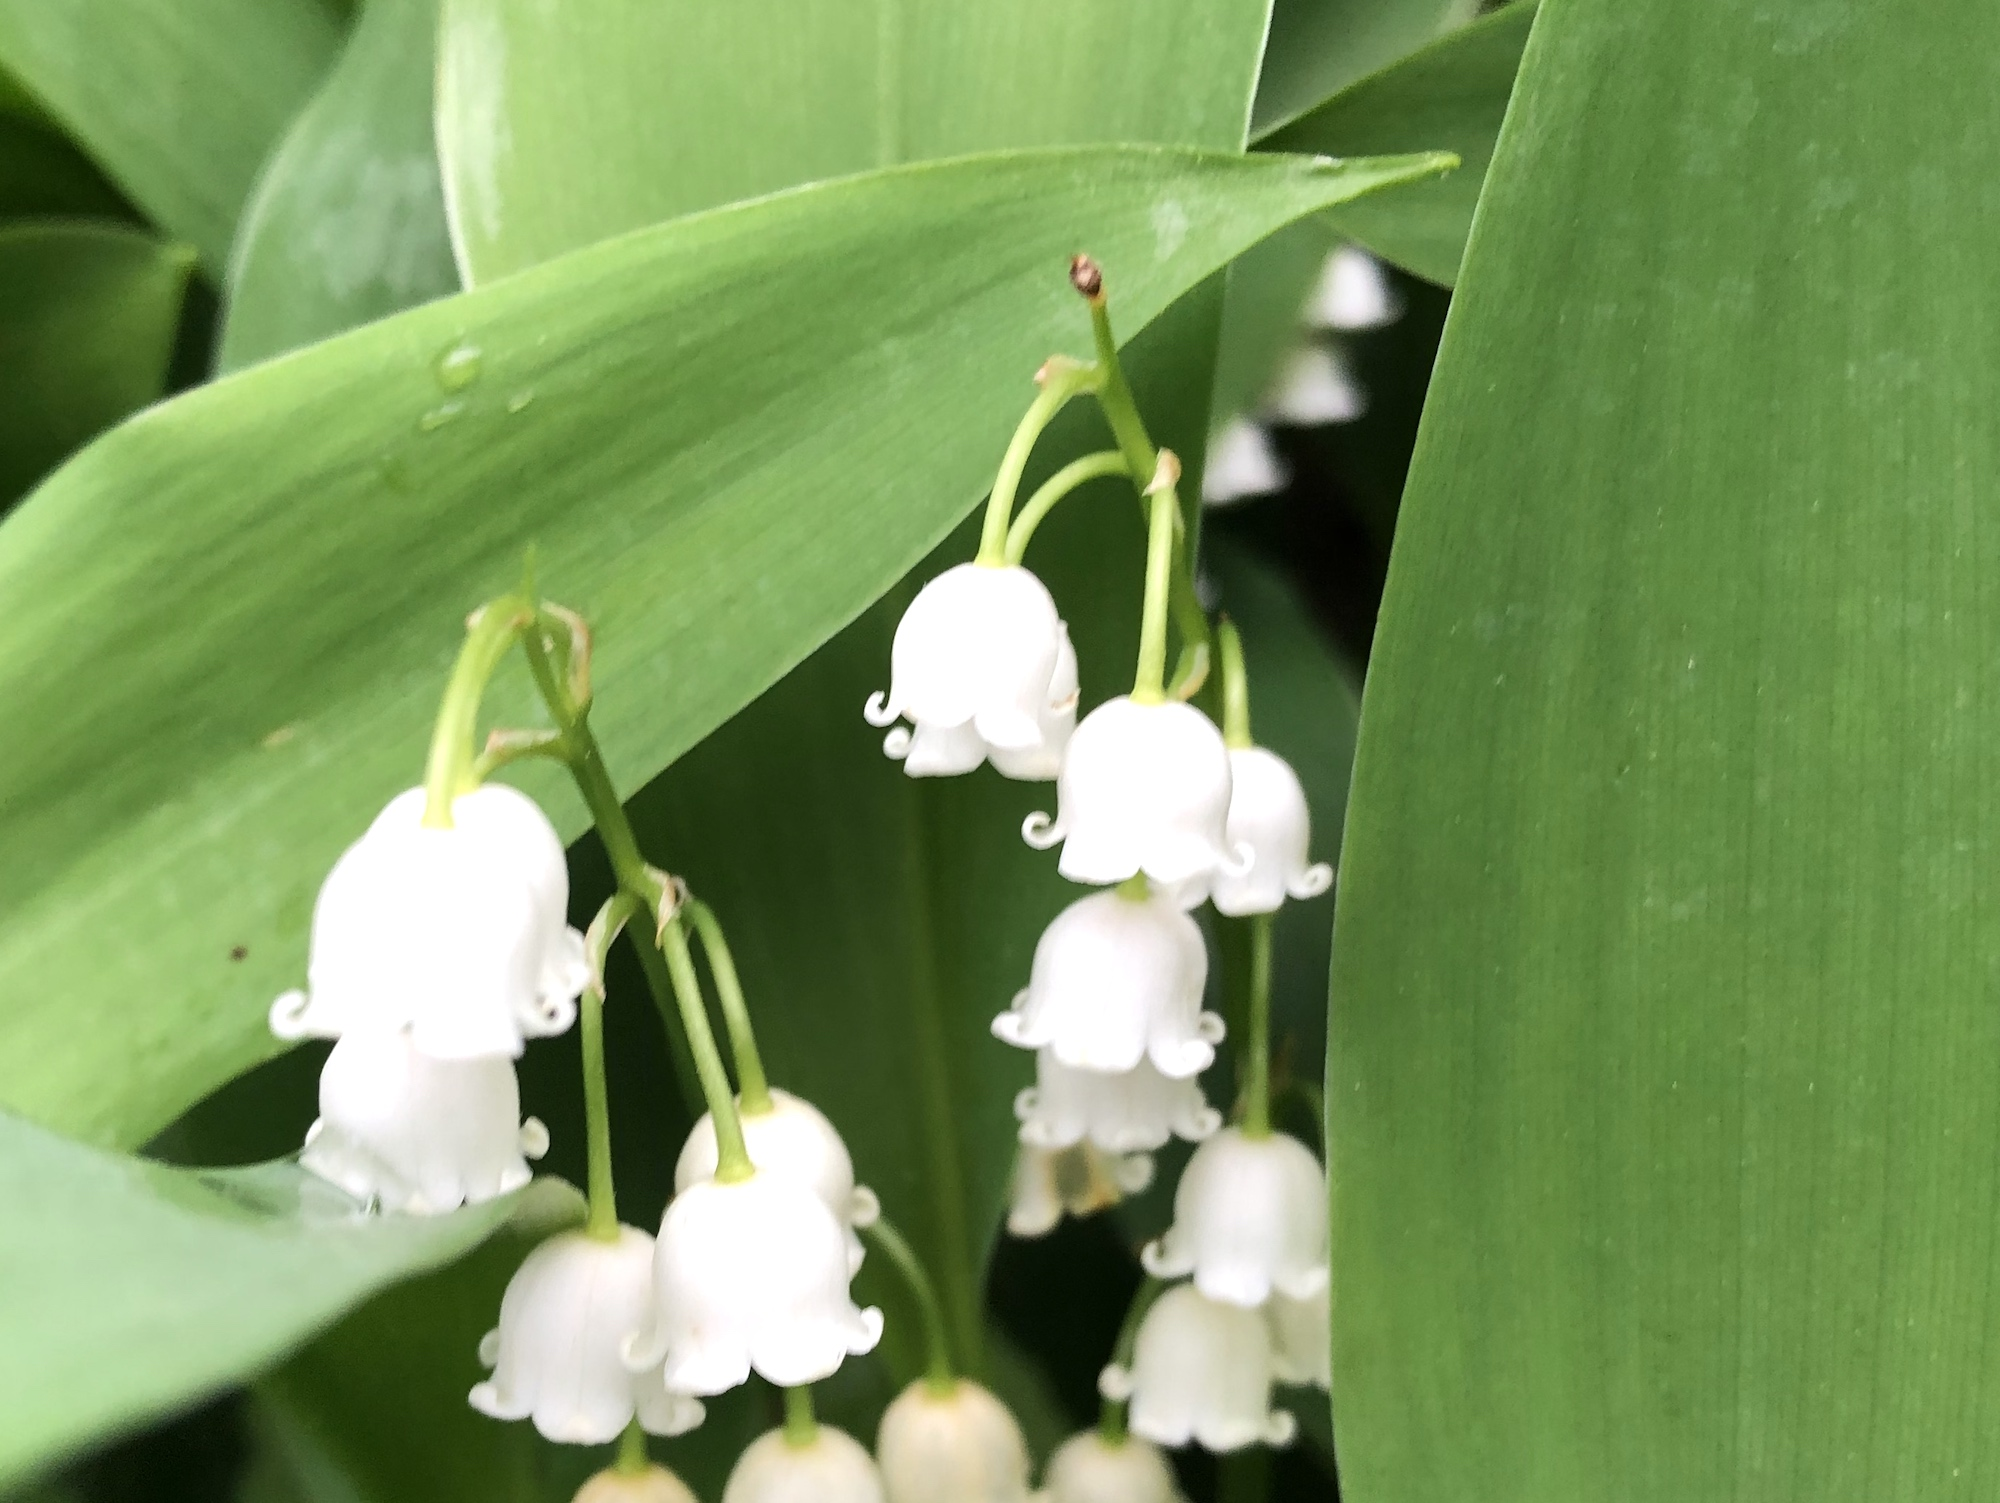 Lily of the Valley on May 30, 2019.